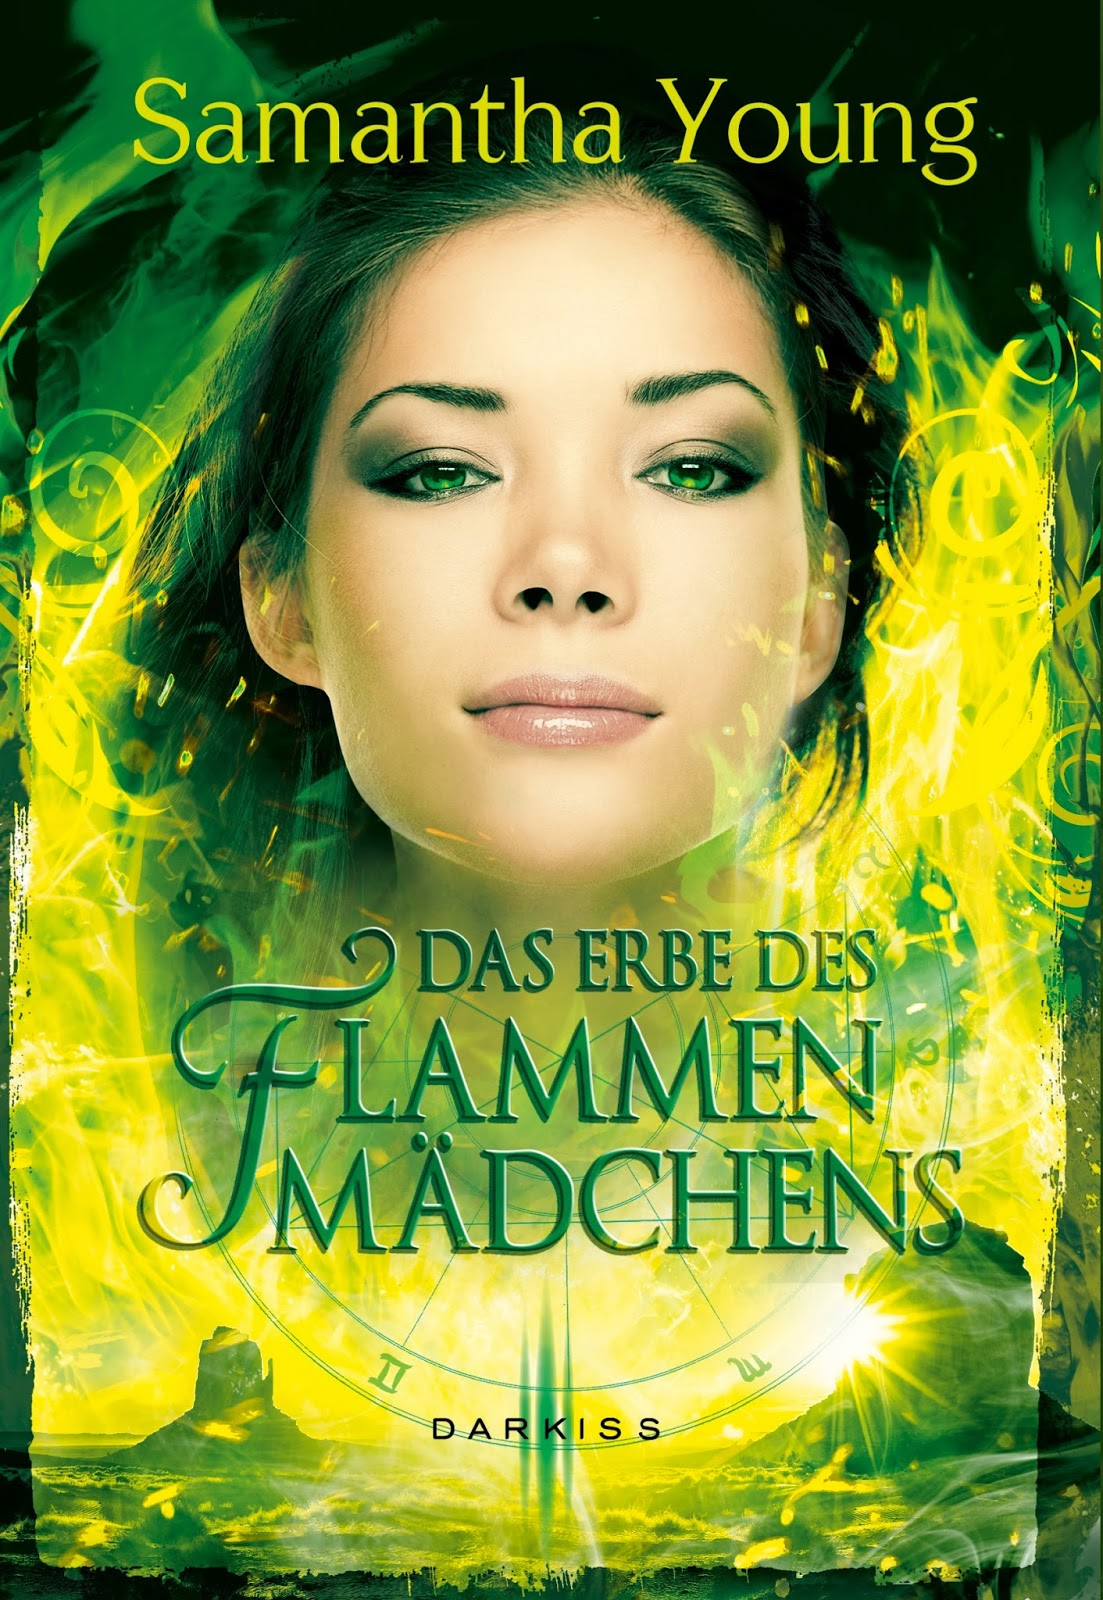 https://www.buchhaus-sternverlag.de/shop/action/productDetails/25282202/samantha_young_das_erbe_des_flammenmaedchens_3956490568.html?aUrl=90007403&searchId=169